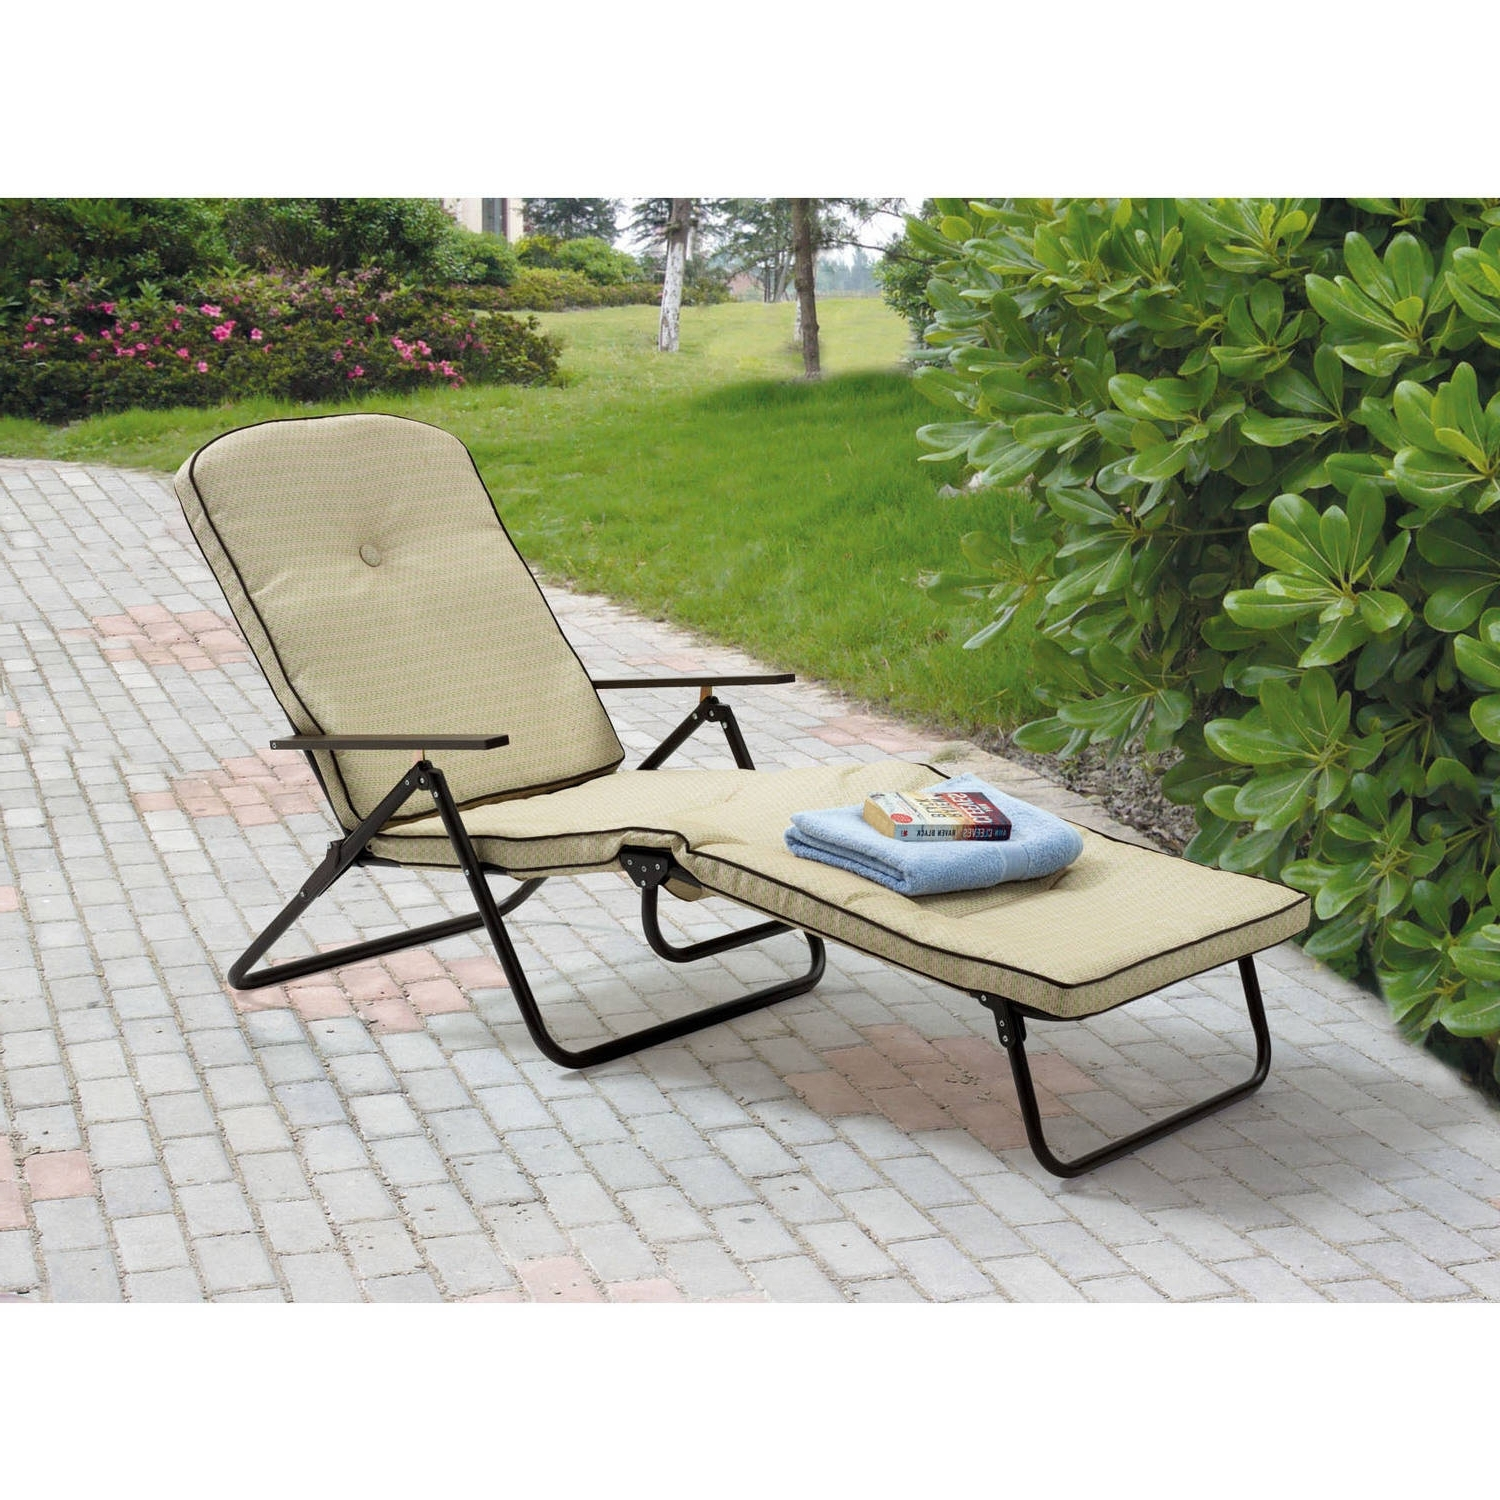 Famous Outdoor : Jelly Lounge Chair Chaise Lounge Sofa Chaise Lounge For Jelly Chaise Lounge Chairs (View 3 of 15)